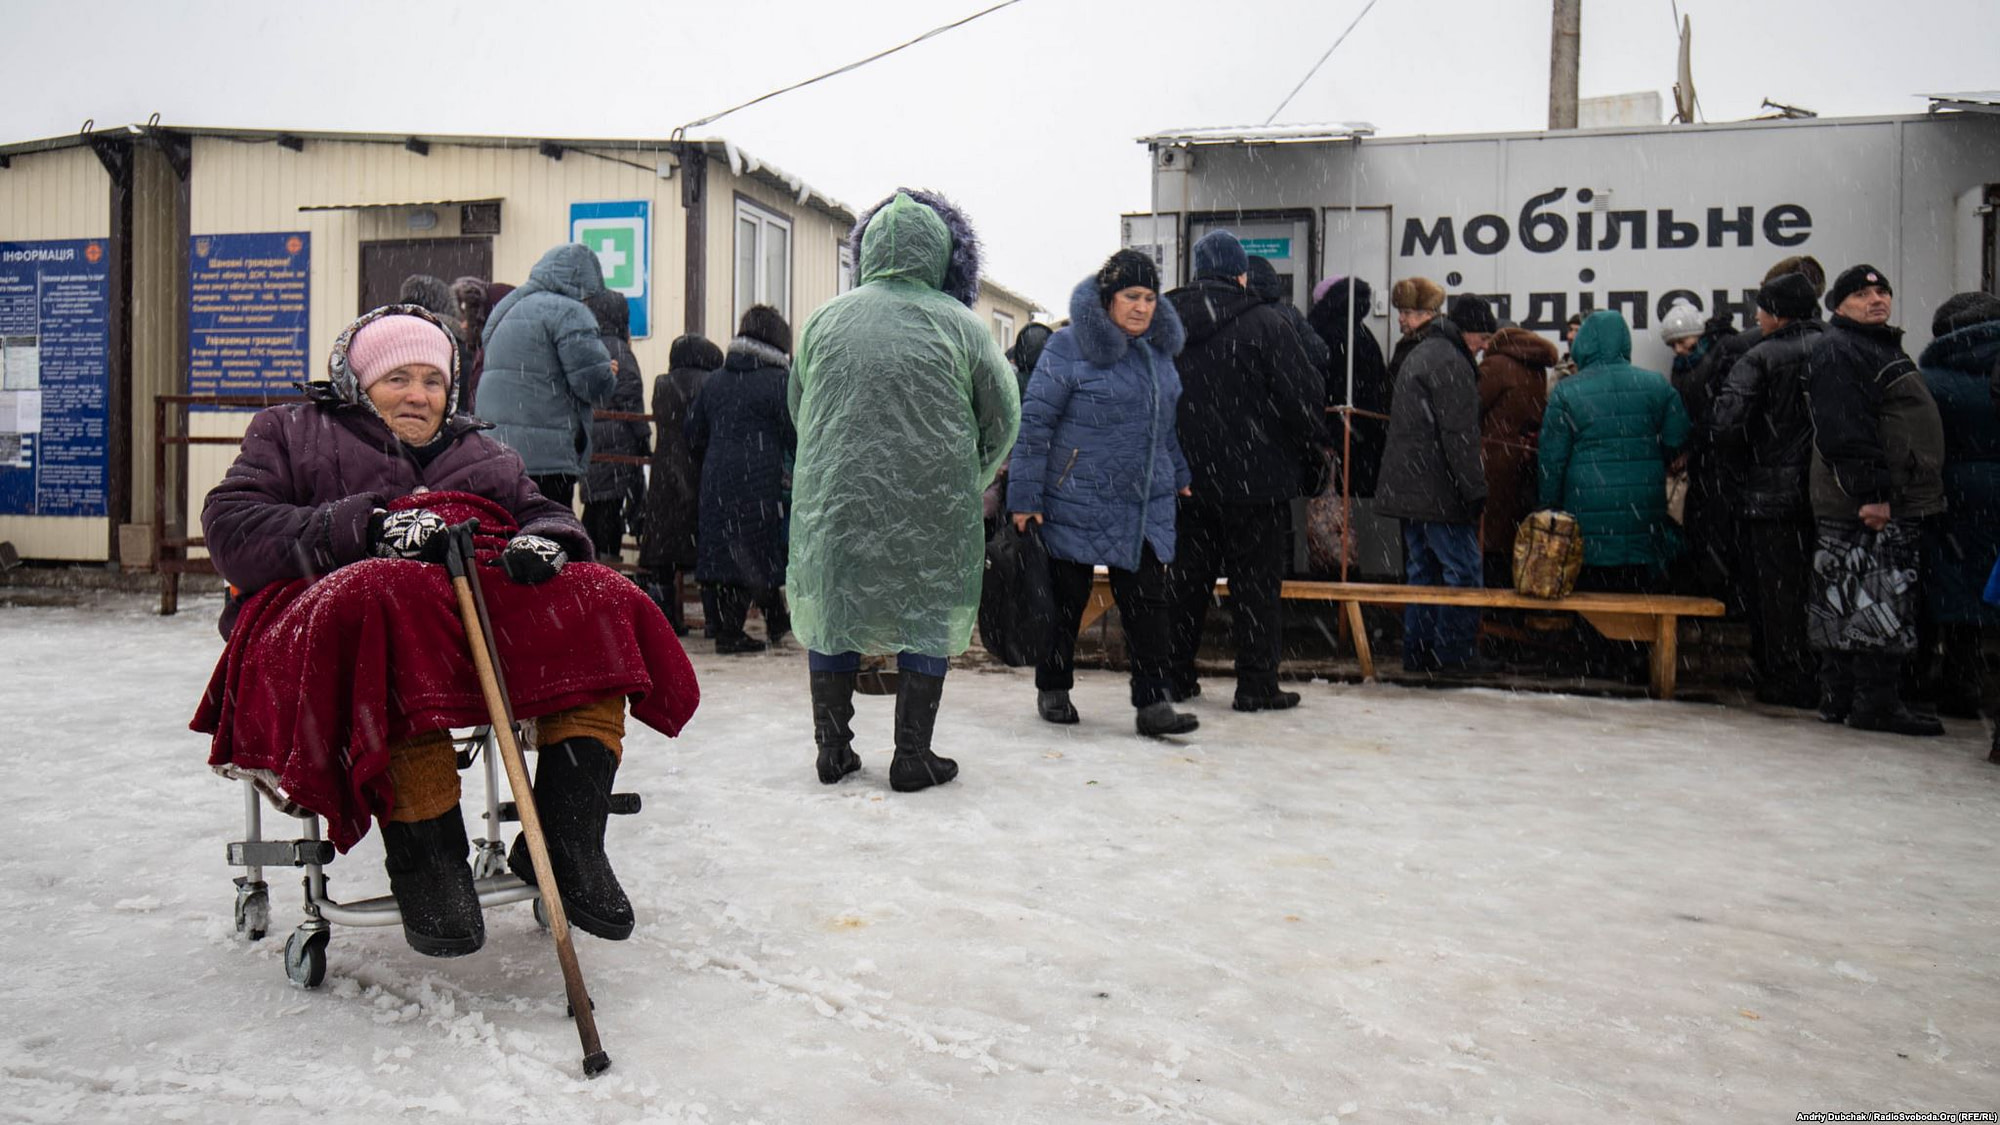 People crossing Stanytsia Luhanska checkpoint photo by Andriy Dubchak